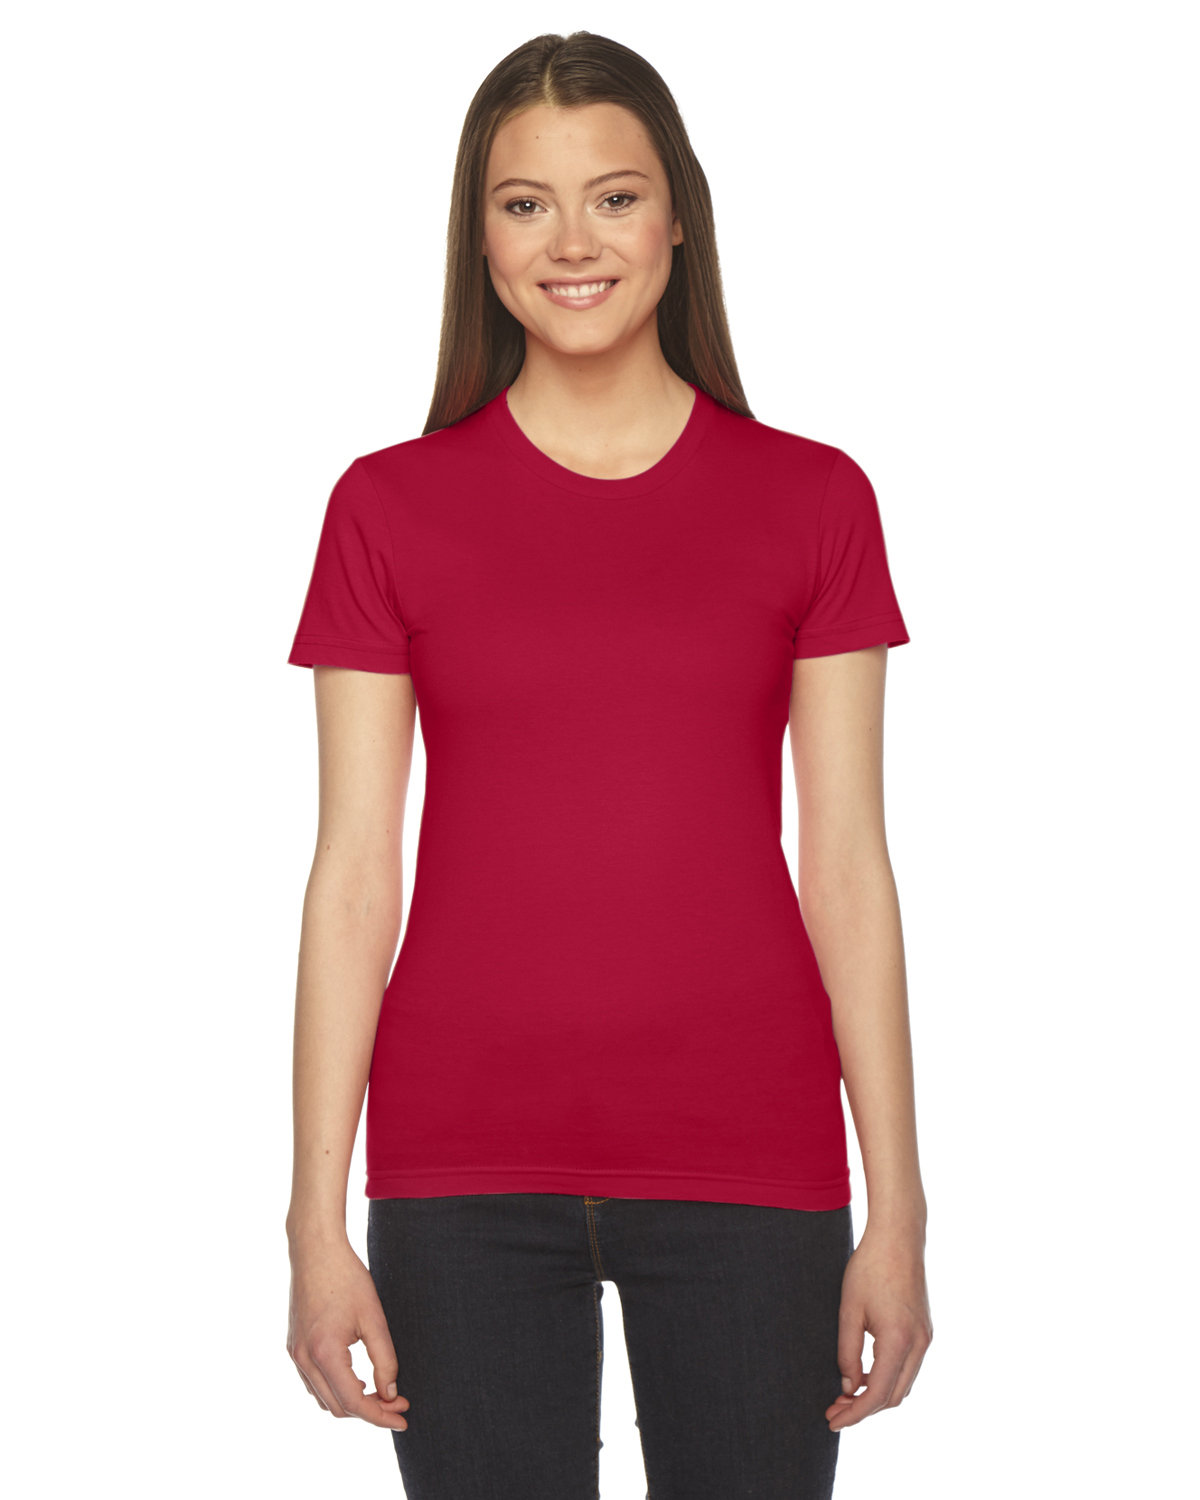 American Apparel Ladies' Fine Jersey USA Made Short-Sleeve T-Shirt RED